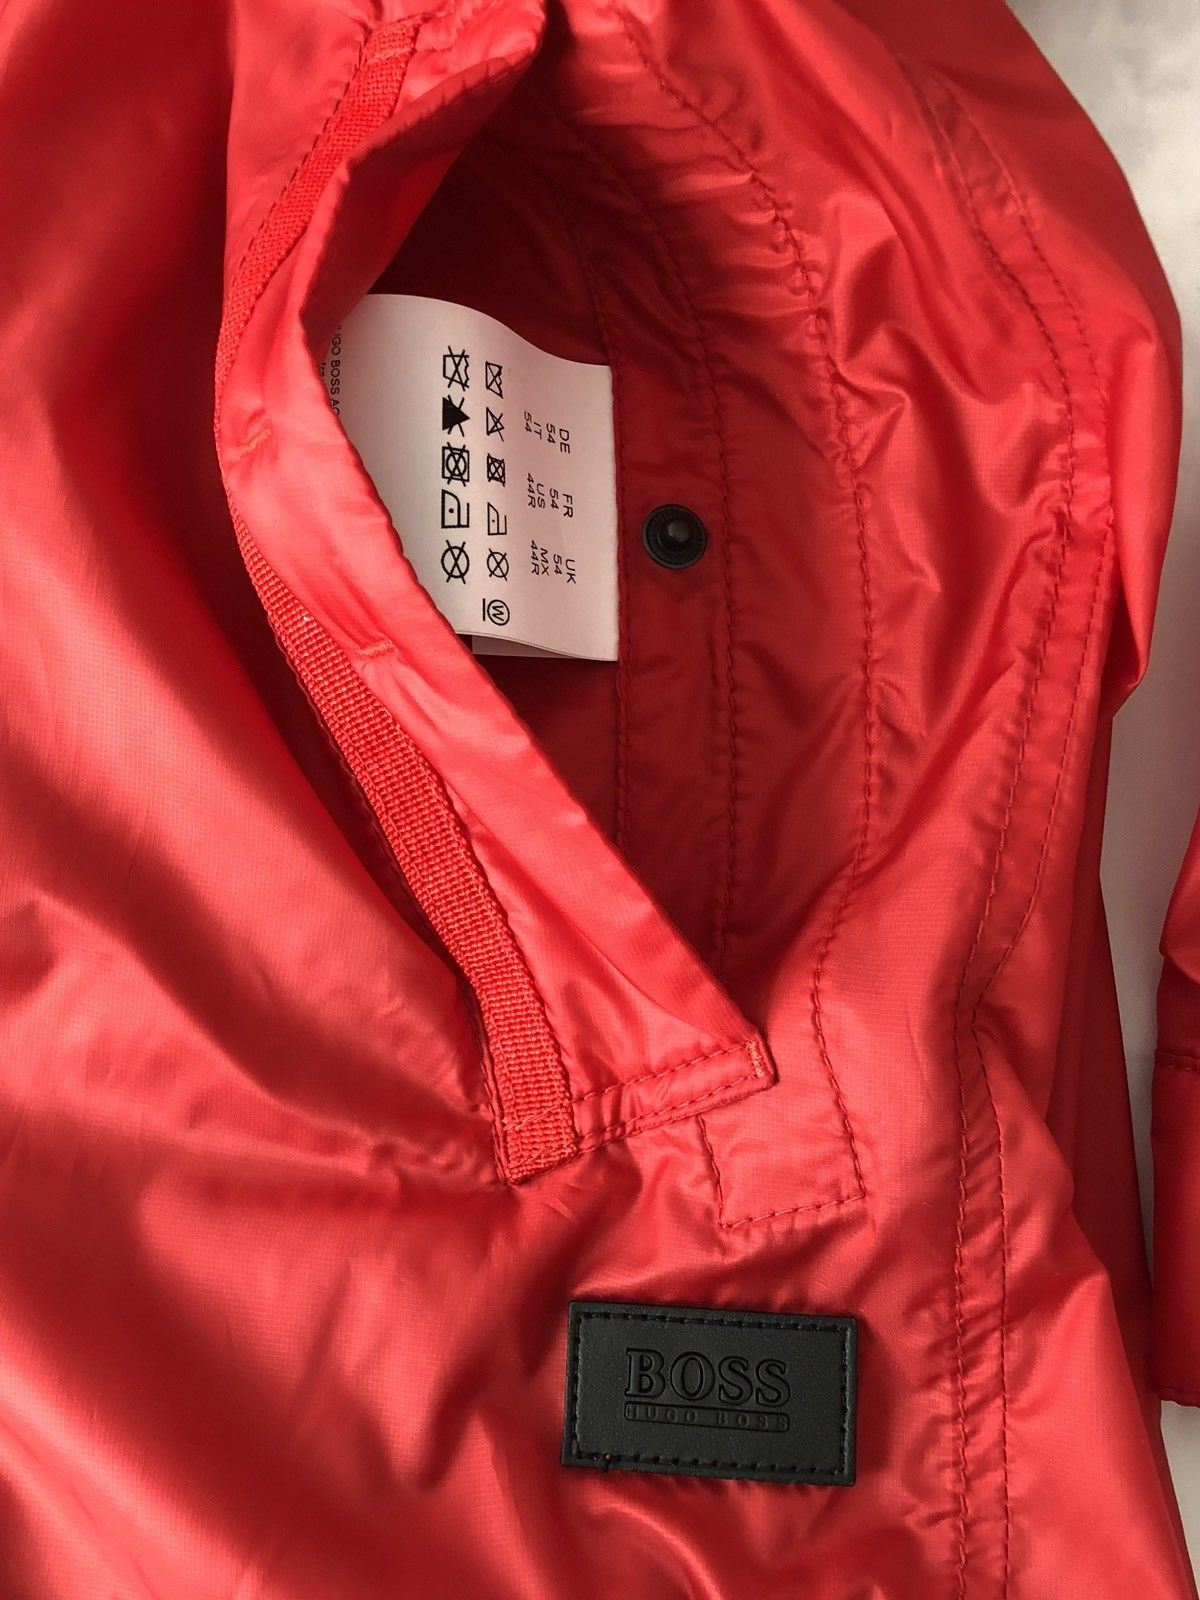 NWT $395 Boss Hugo Boss Black Label Colis Rain Jacket Bright Red Size 42R US - BAYSUPERSTORE